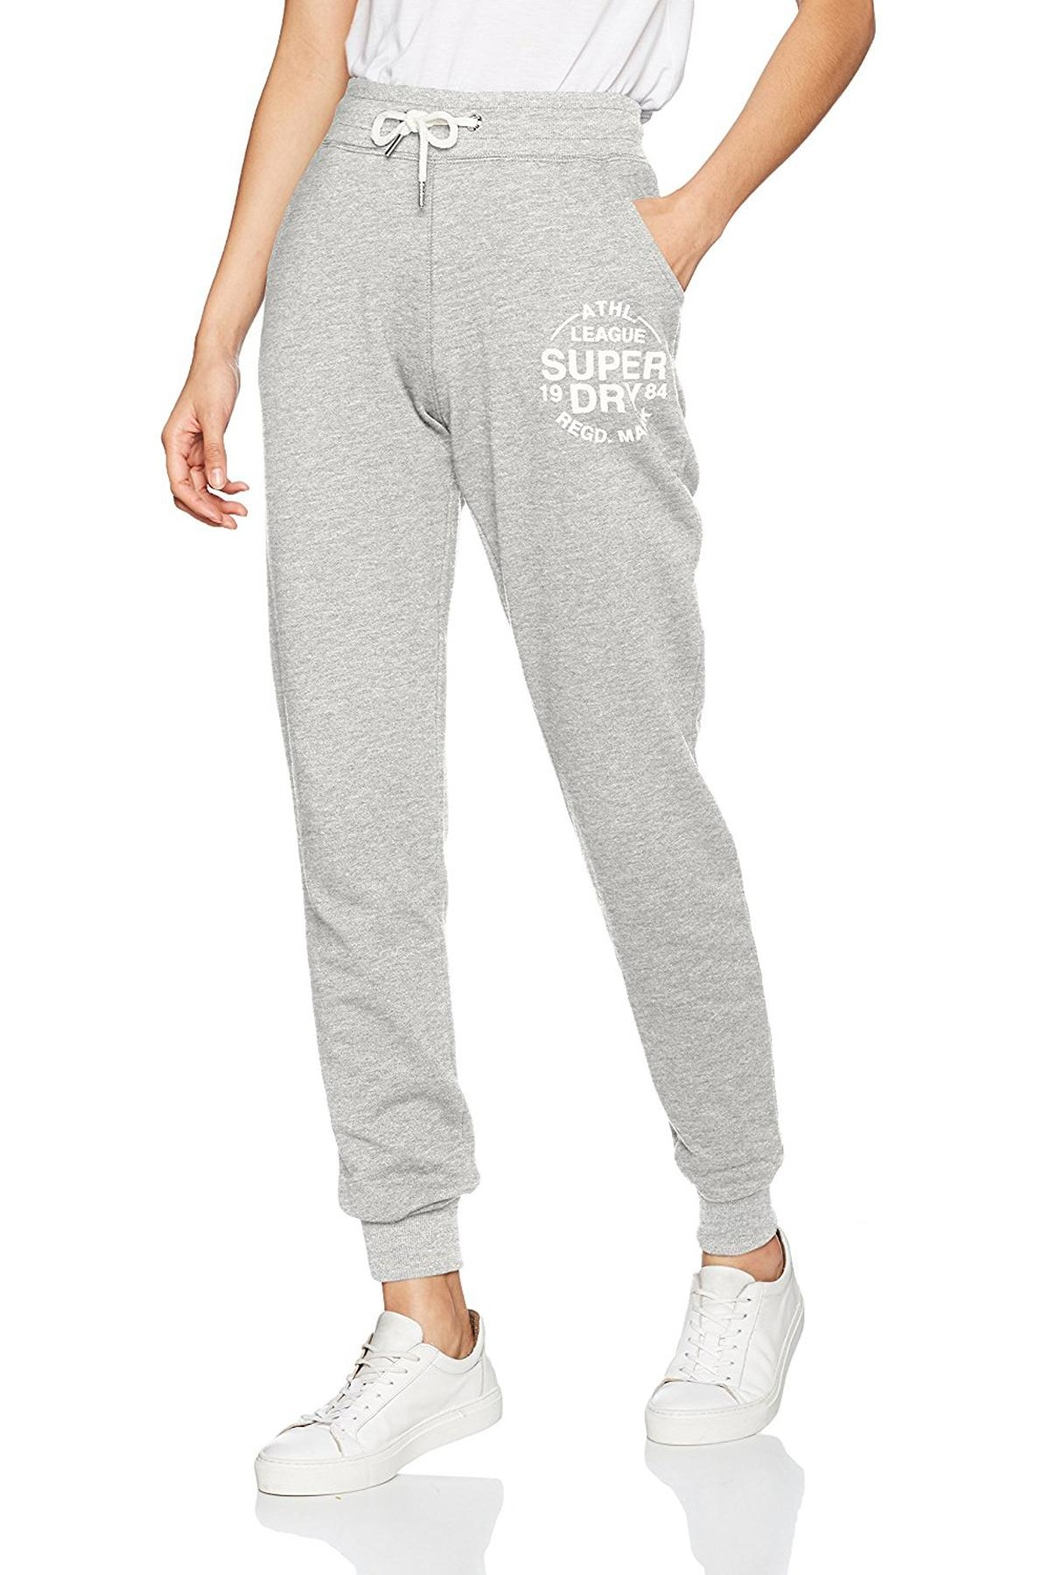 Superdry Athletic League Cuff Joggers - Main Image